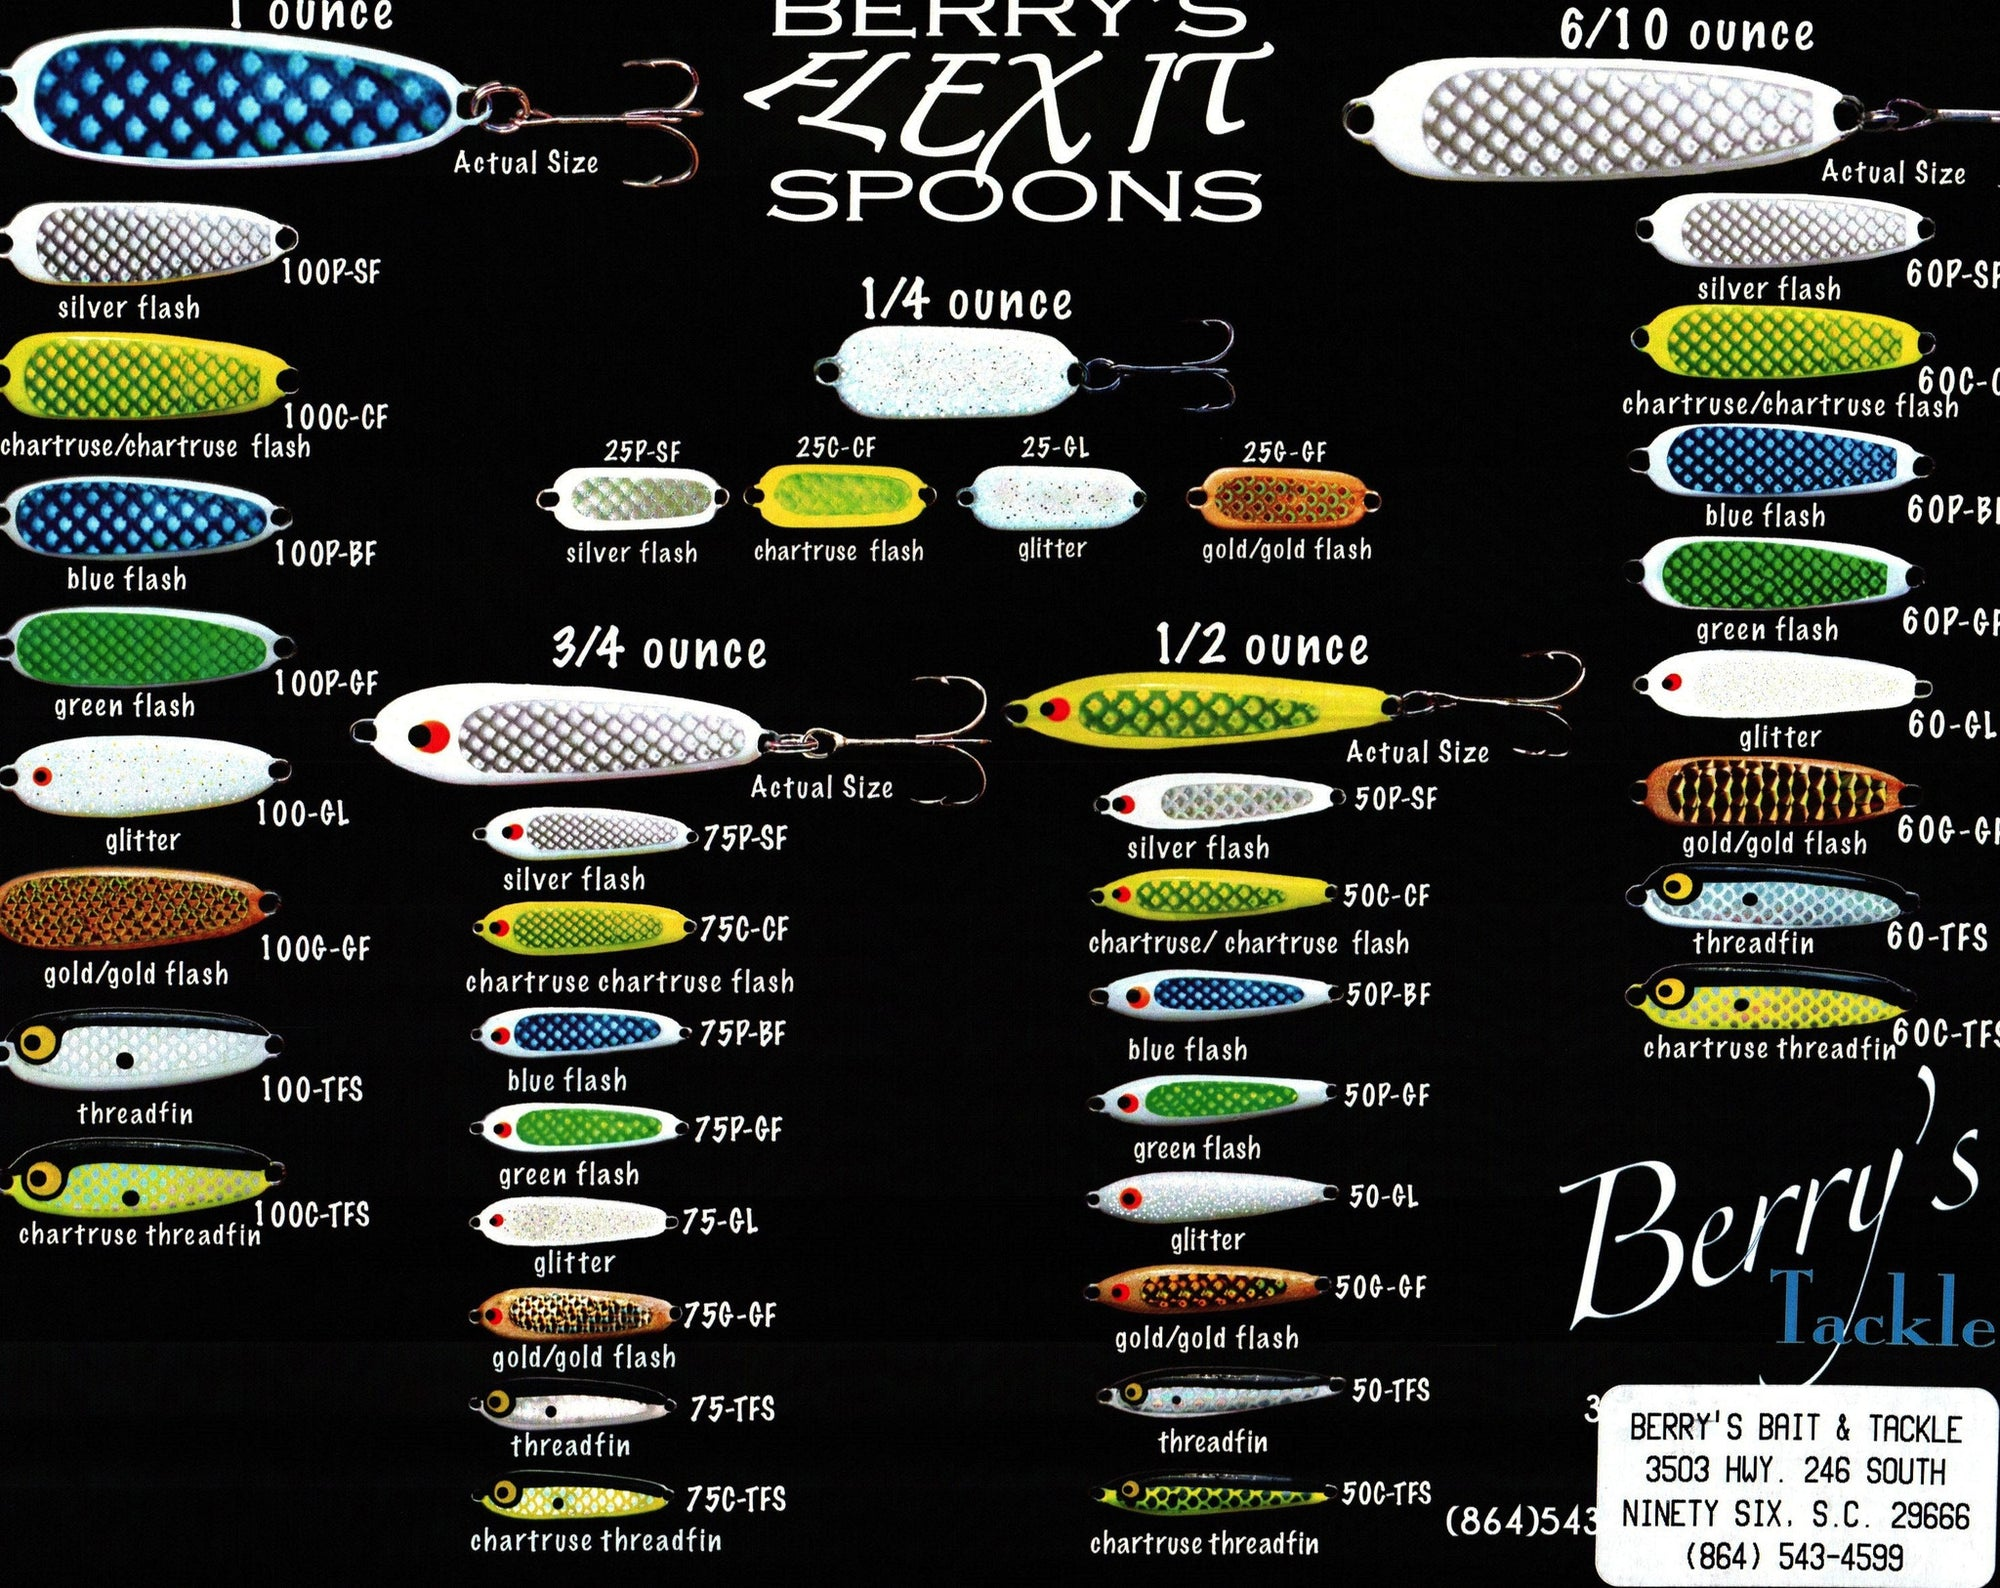 Berry's Tackle Flex-It Spoons - Angler's Headquarters